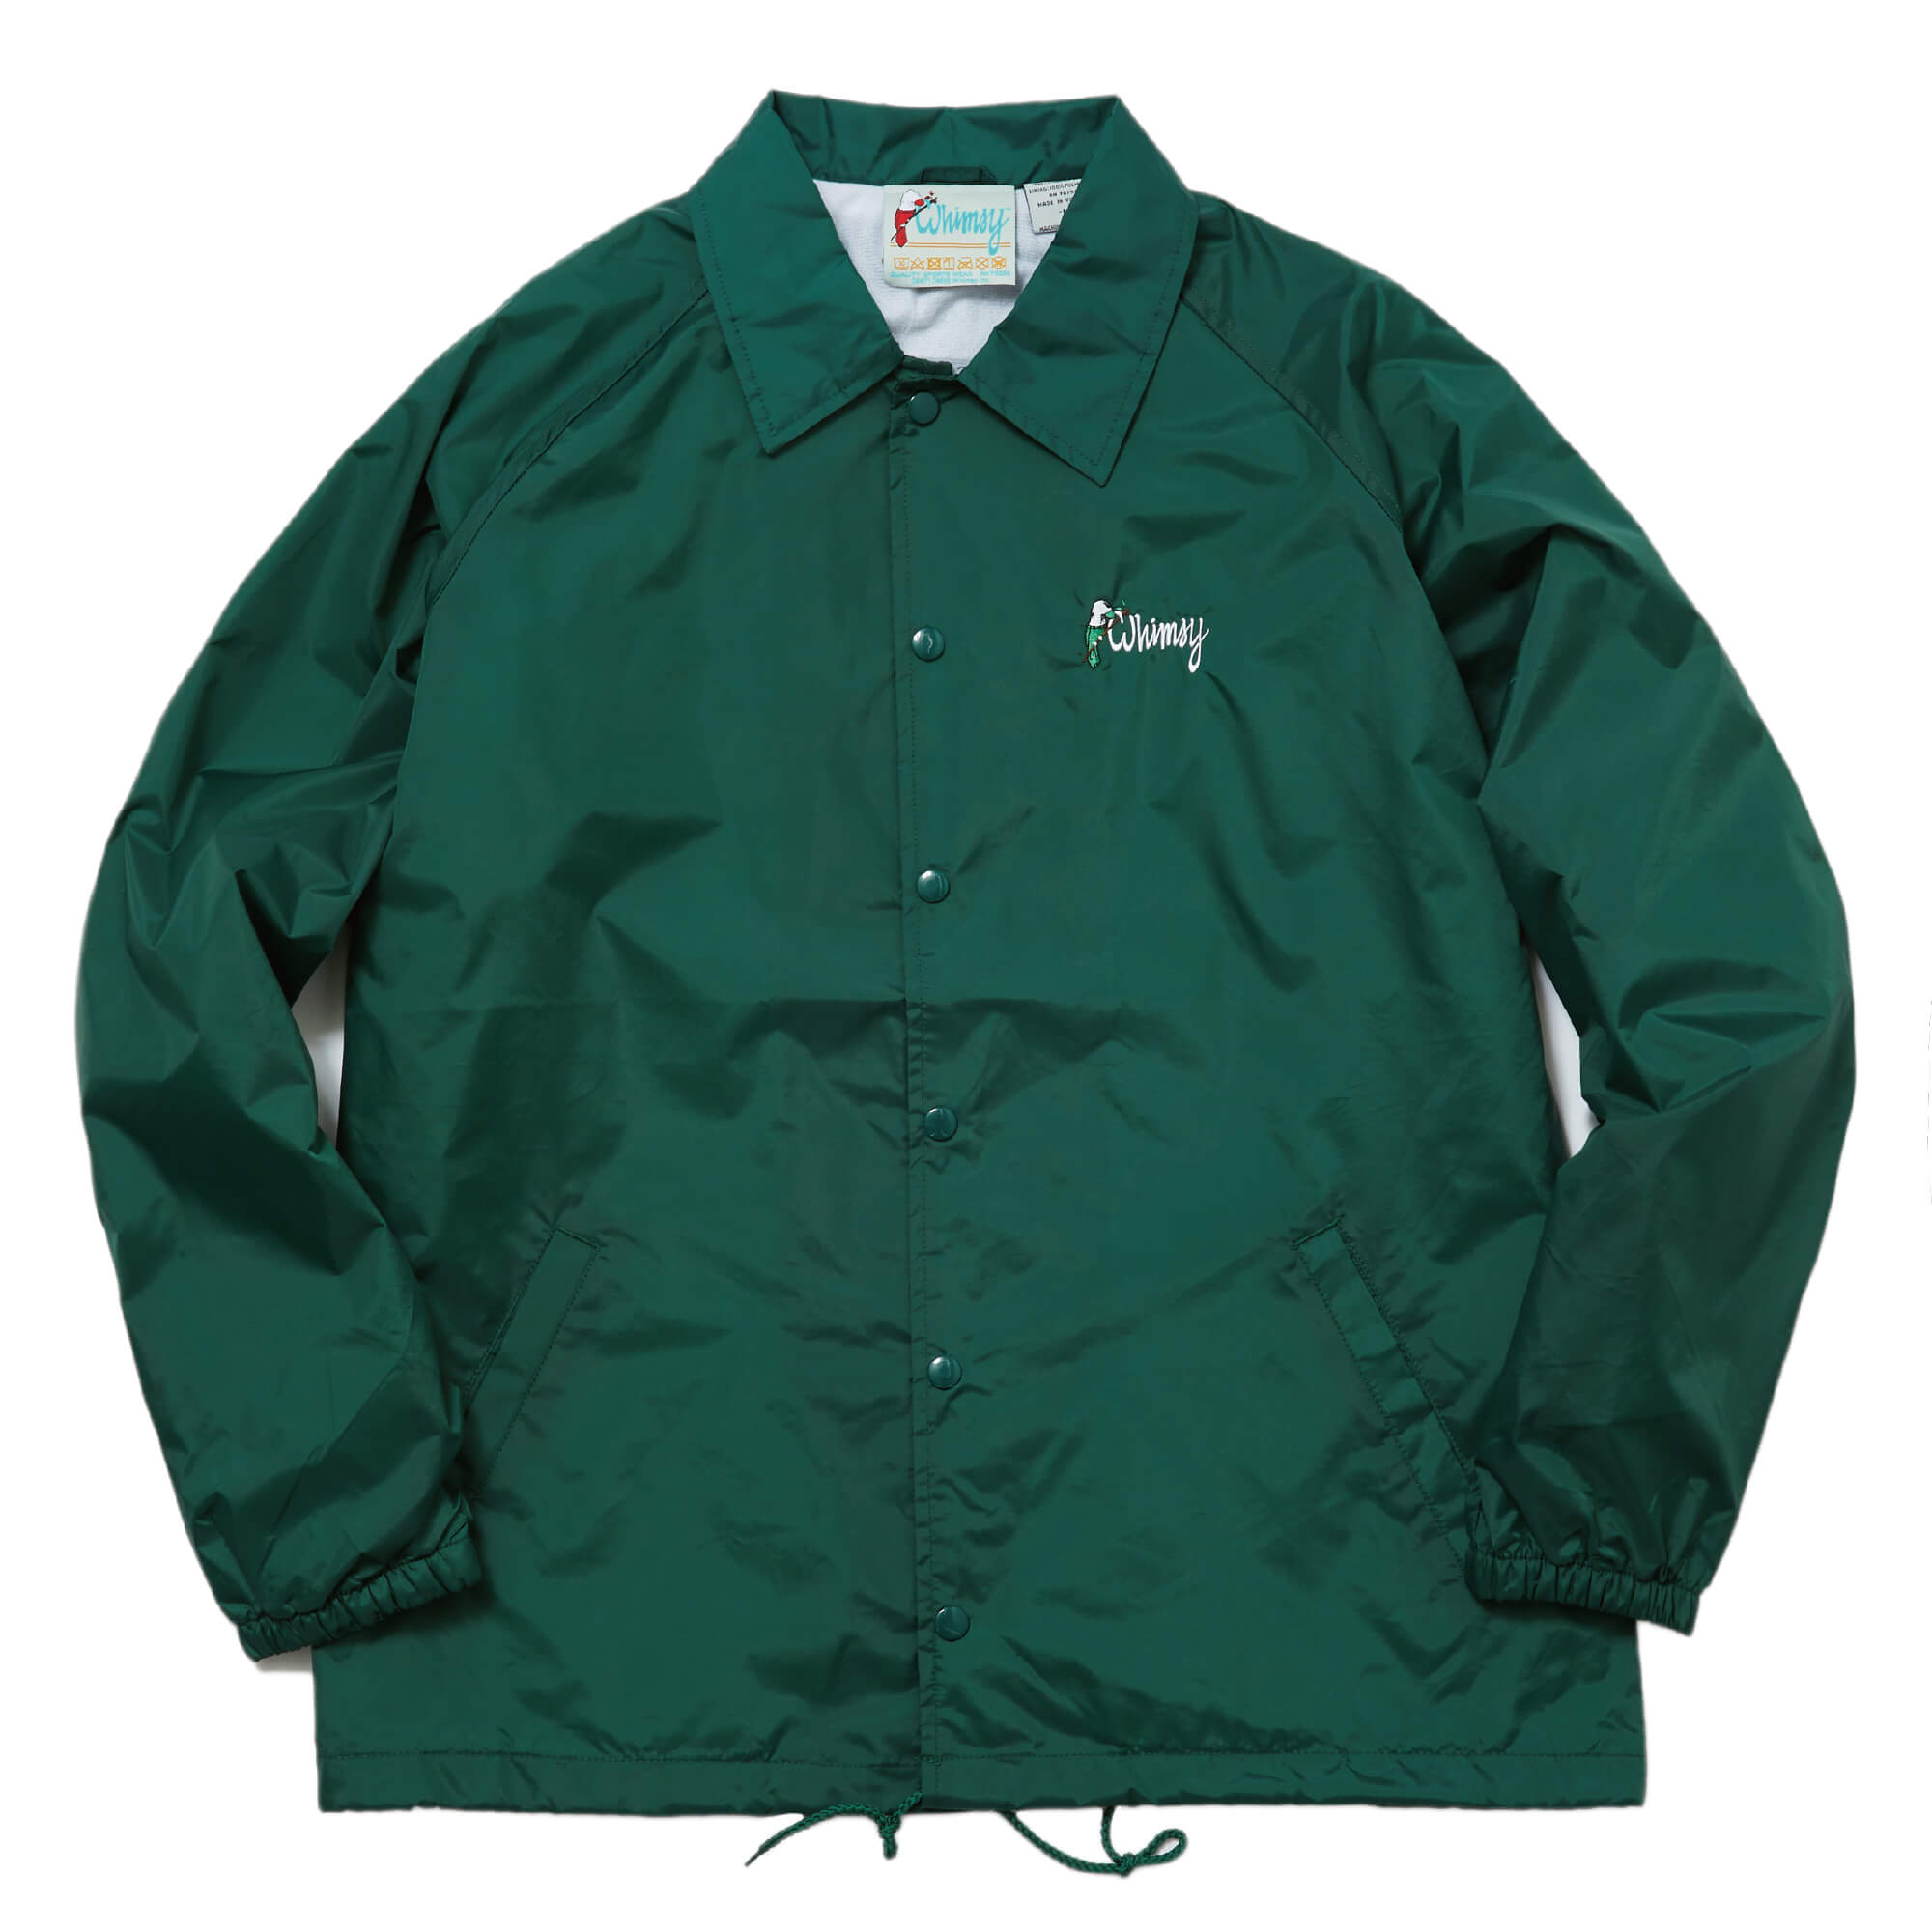 SOCK BIRD COACHES JACKET